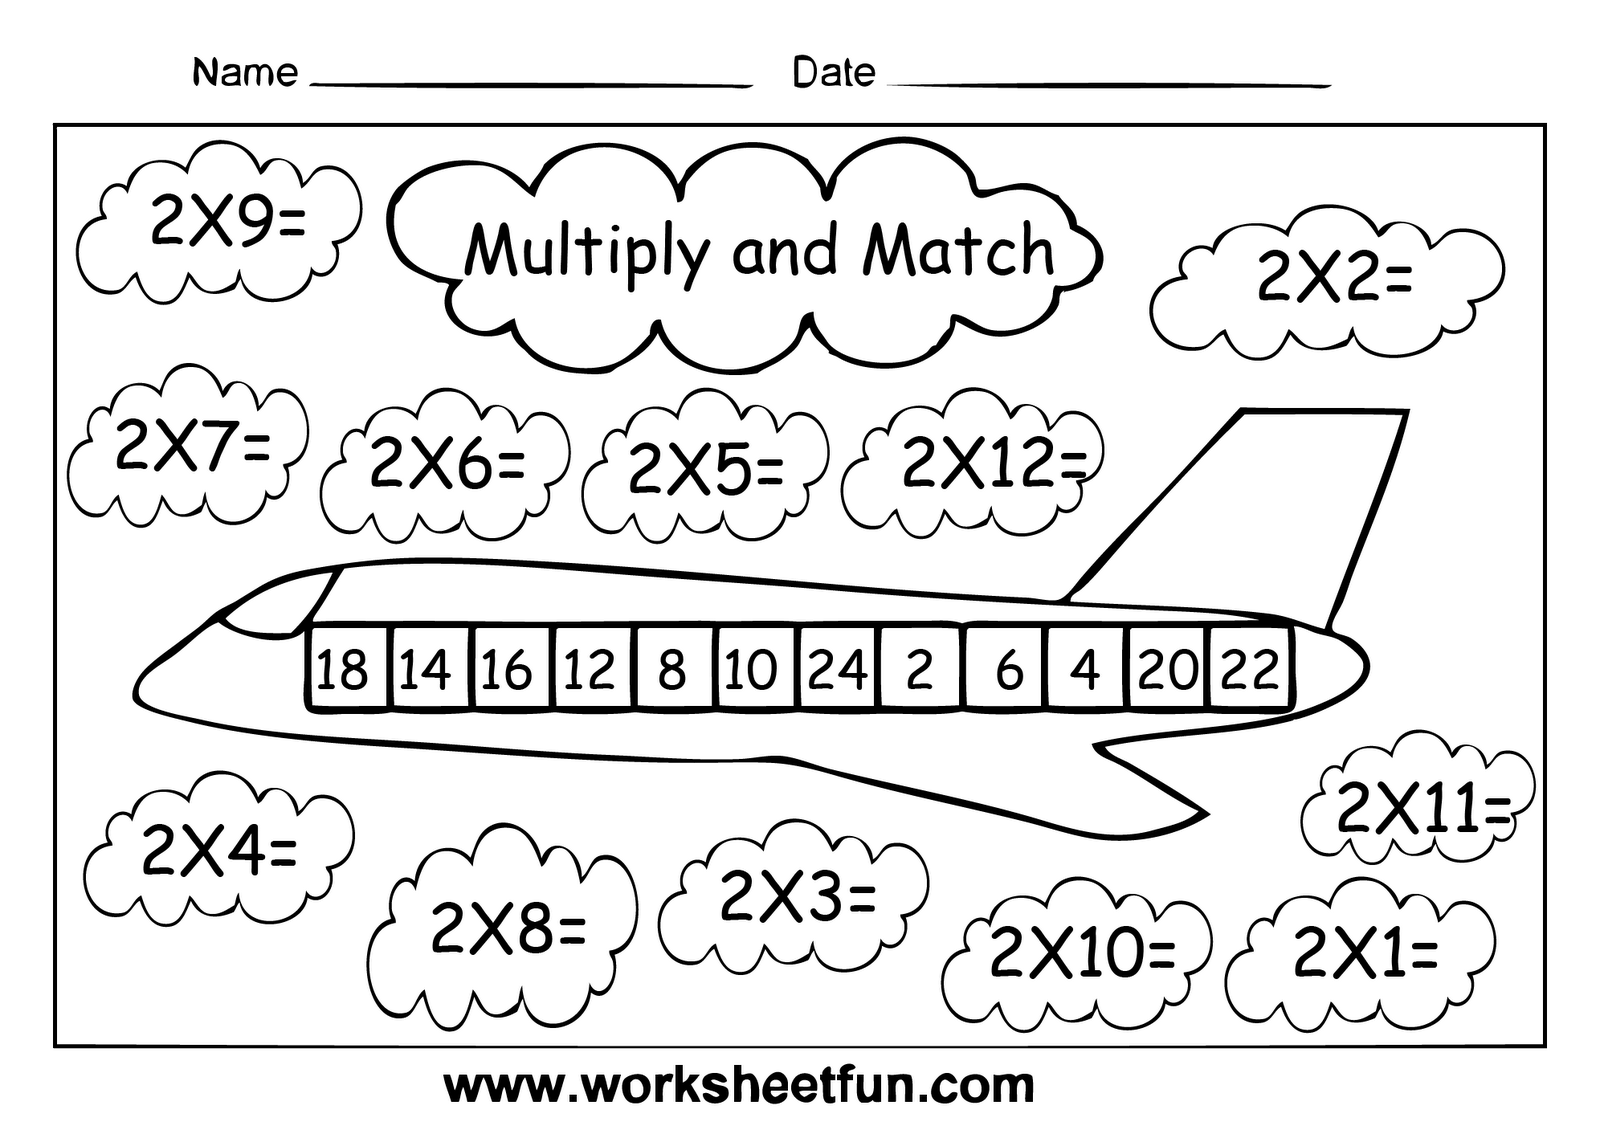 worksheet Two Times Table Worksheet 2 times table worksheets free library download and worksheets